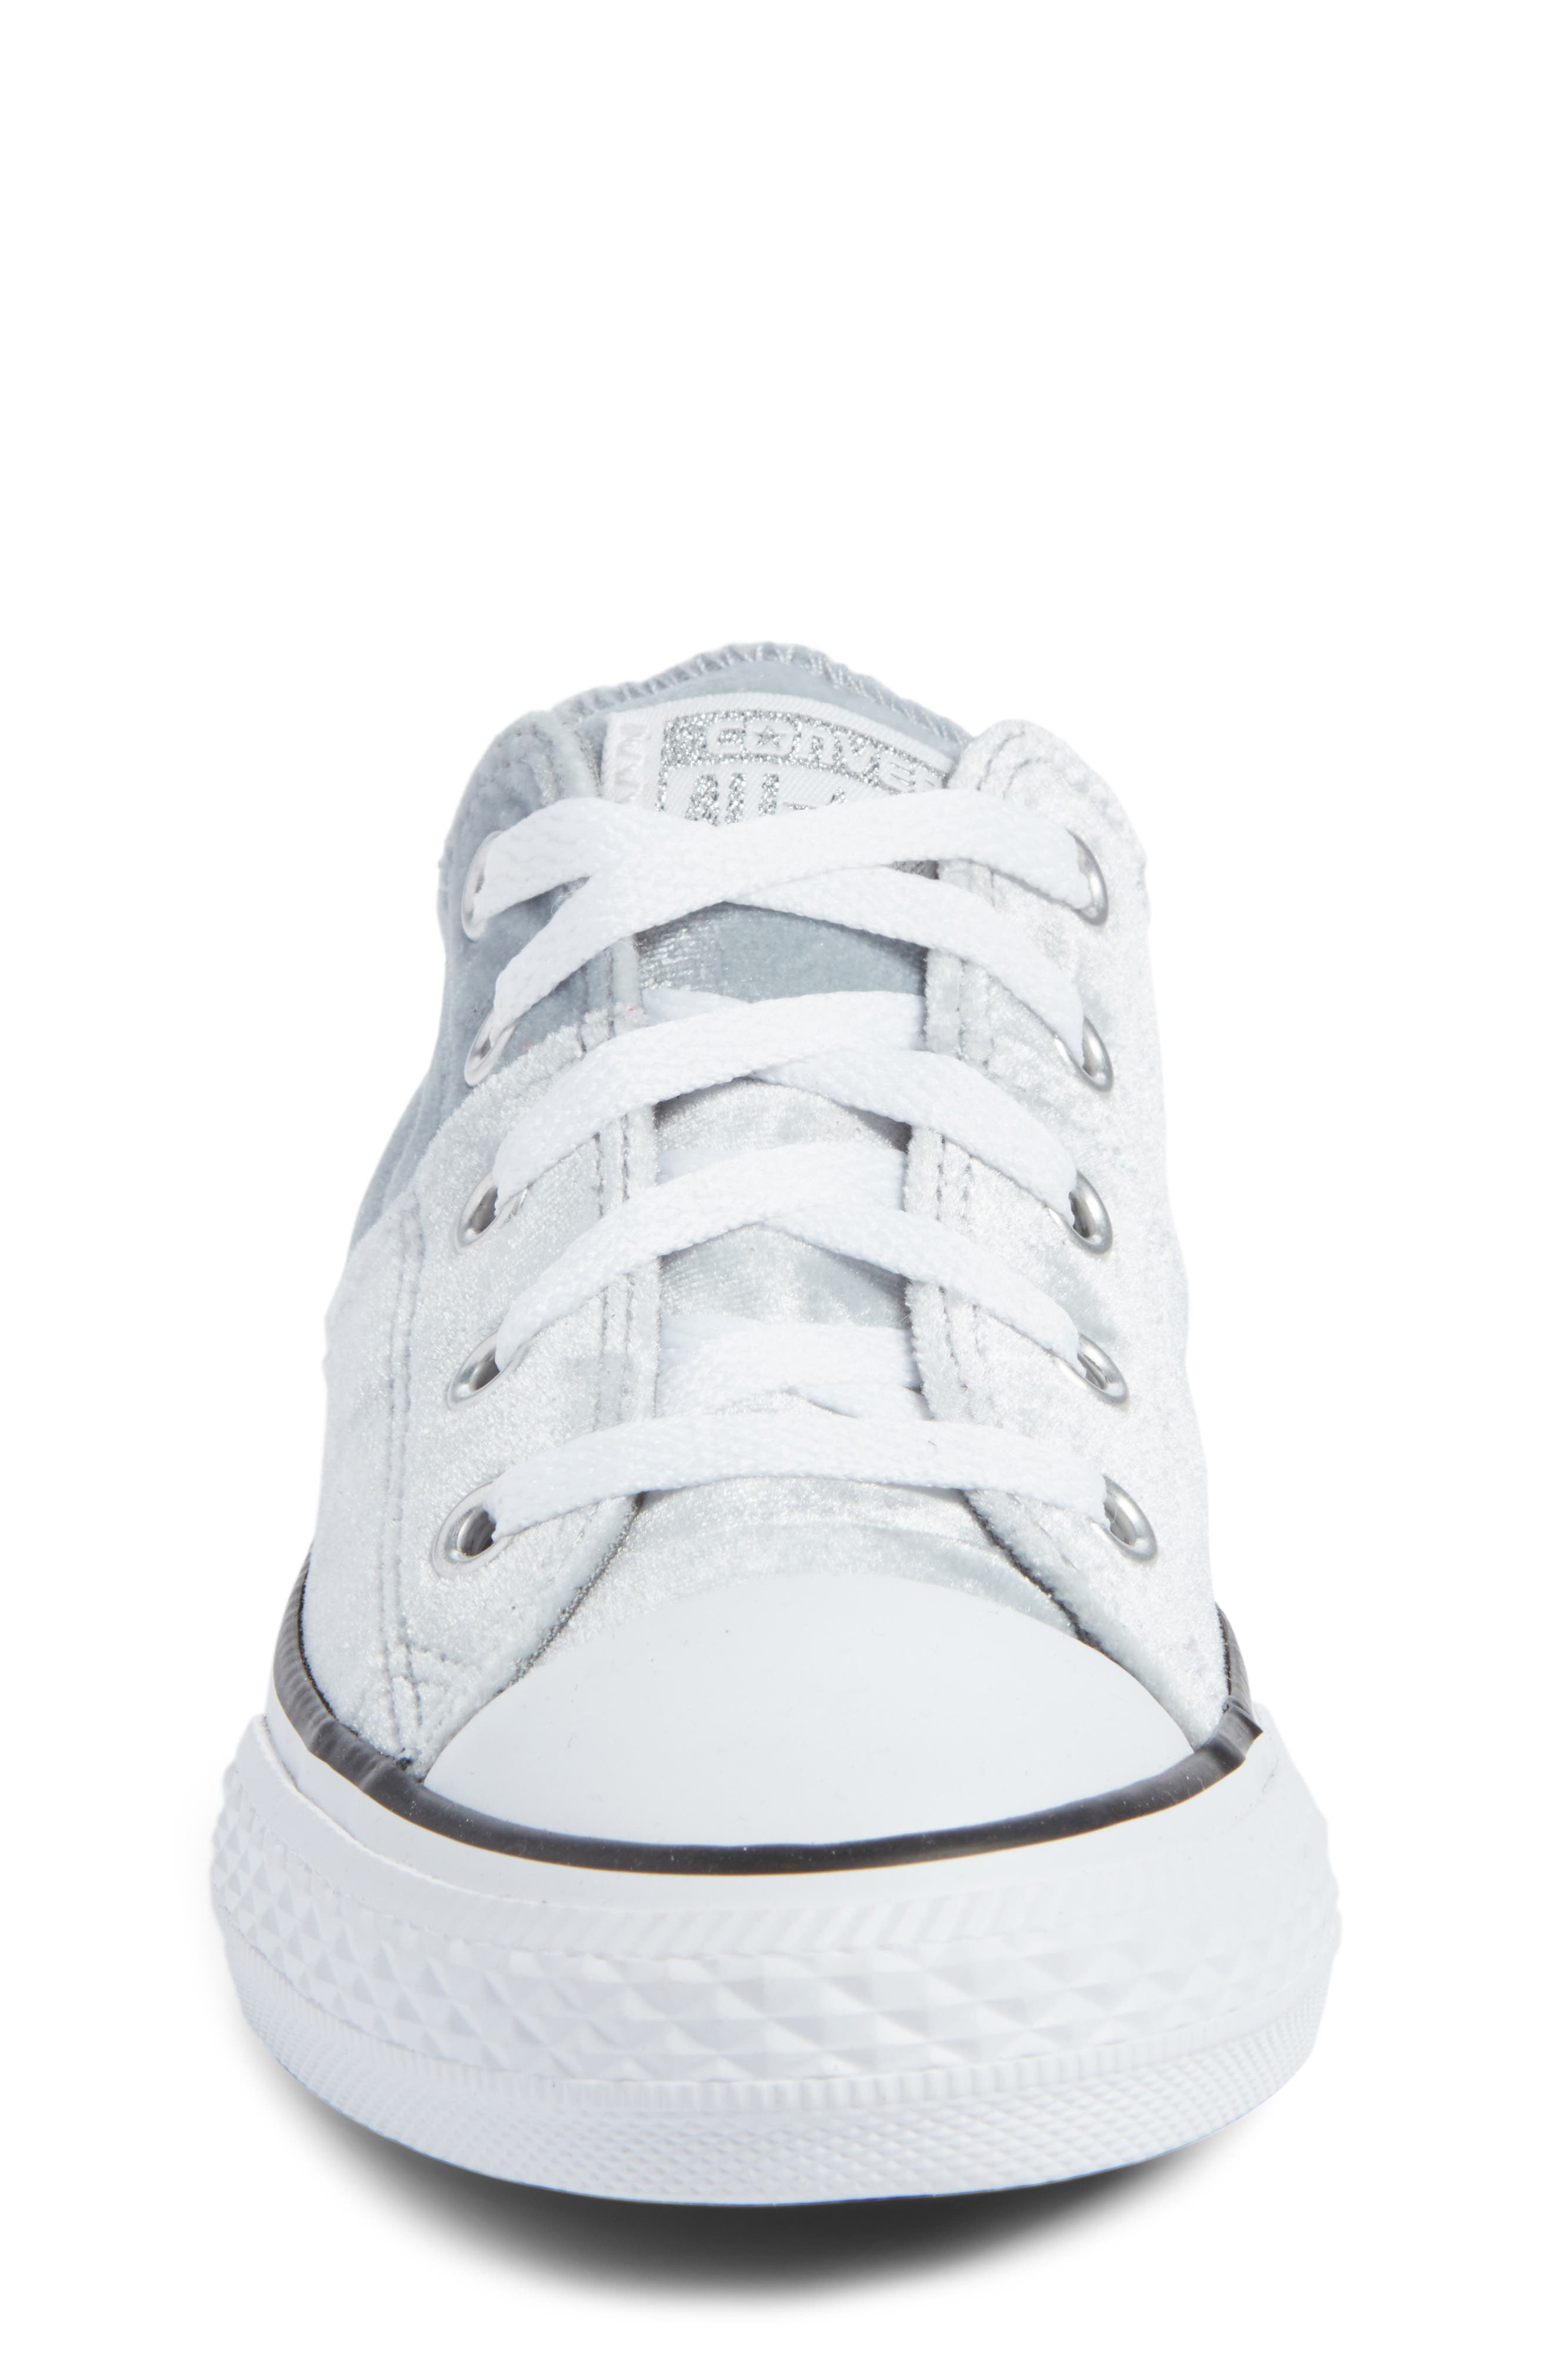 Chuck Taylor<sup>®</sup> All Star<sup>®</sup> Madison Velvet Low Top Sneaker,                             Alternate thumbnail 4, color,                             020